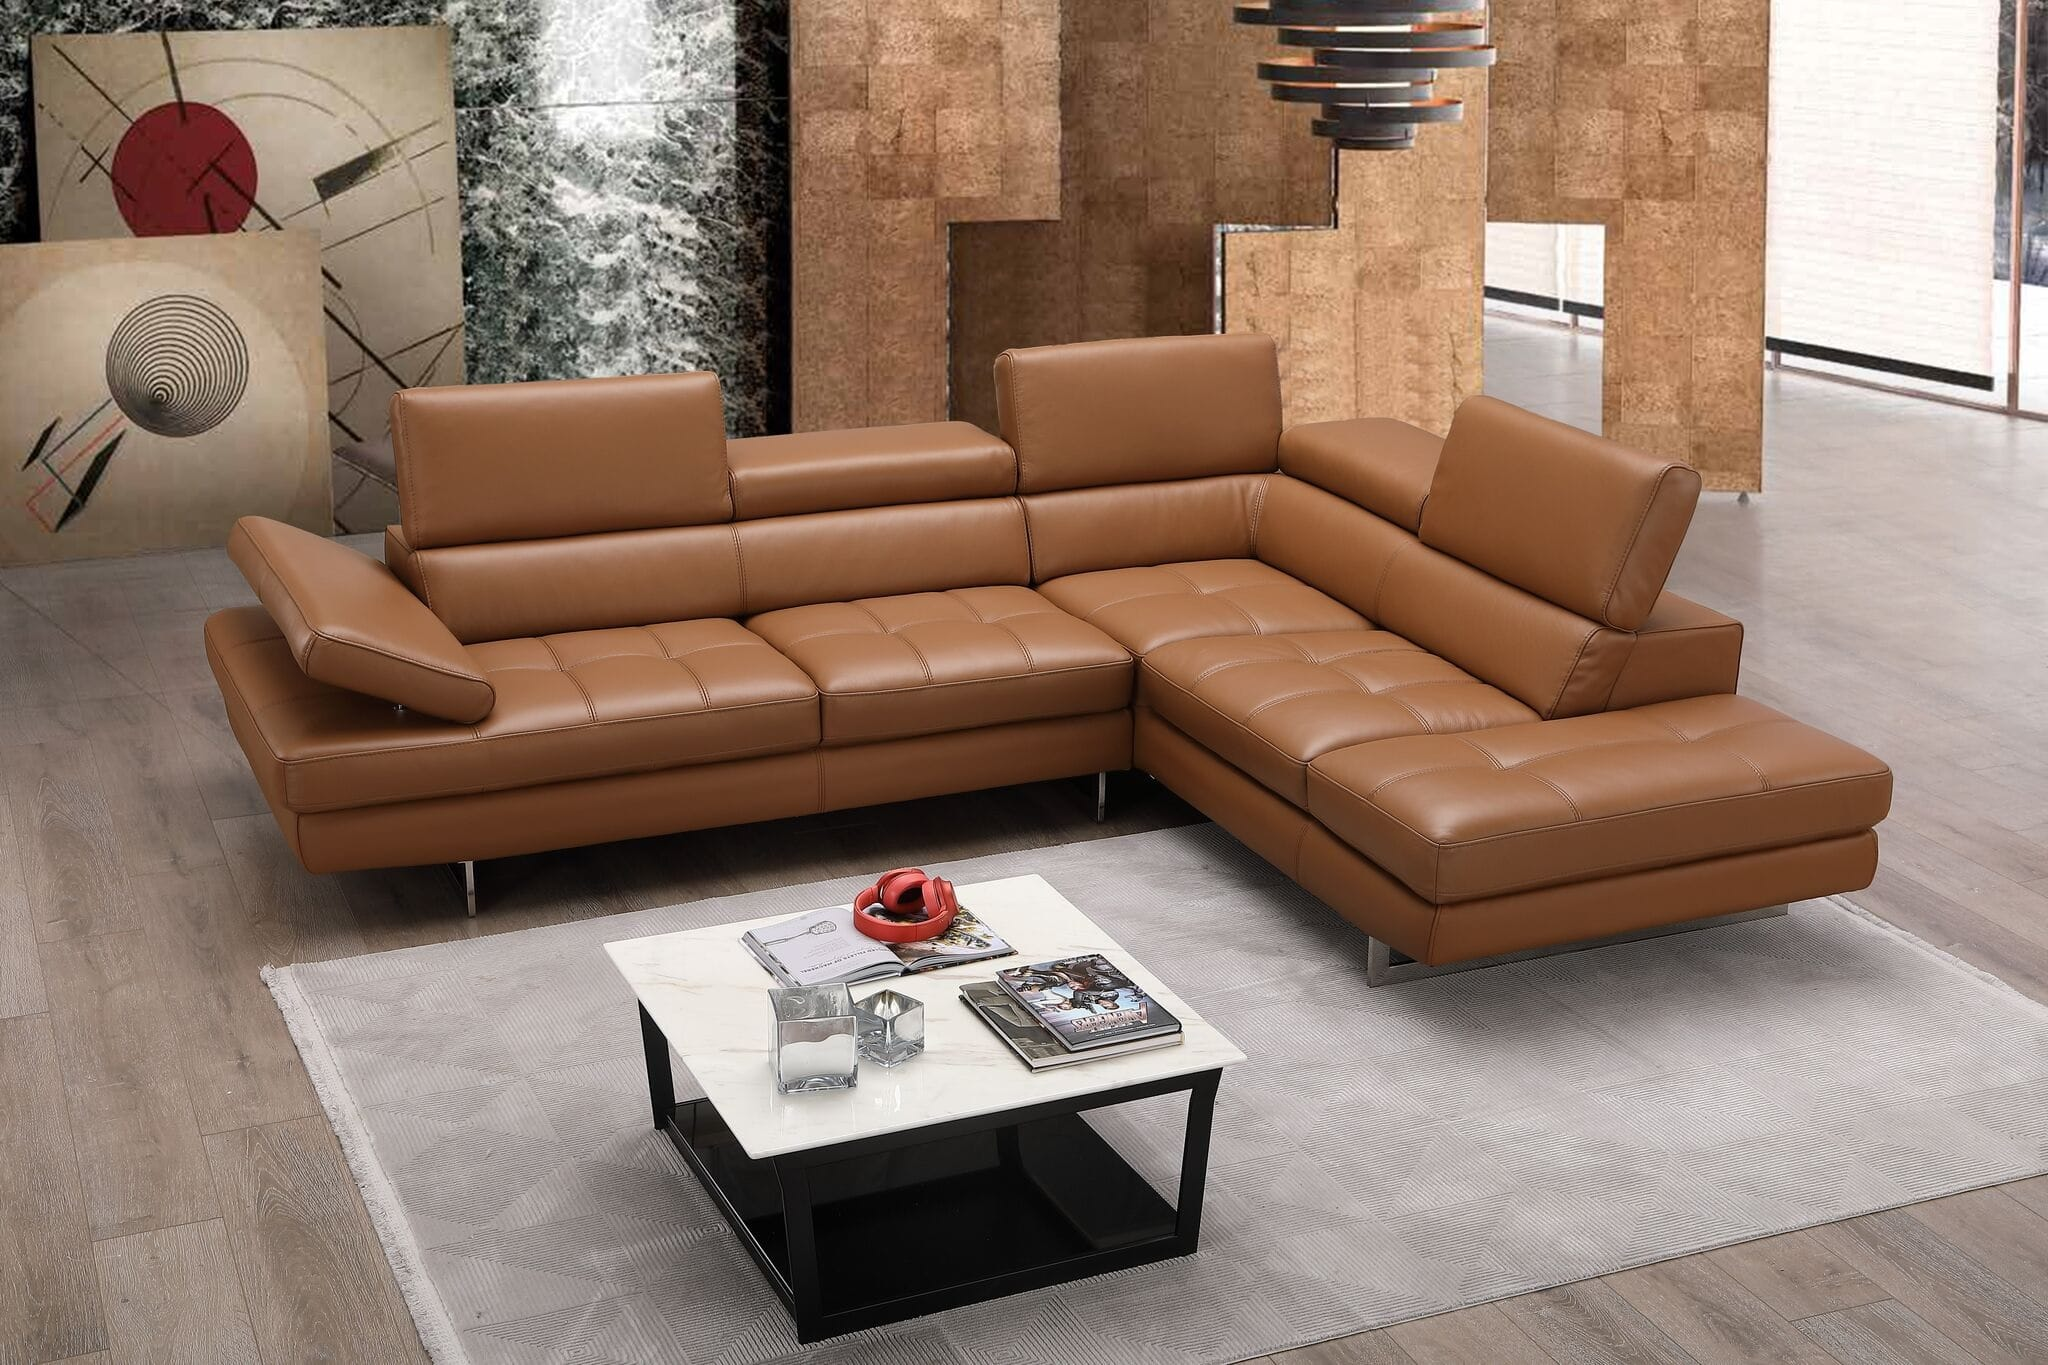 Superb A761 Premium Italian Leather Sectional Caramel By Jm Furniture Caraccident5 Cool Chair Designs And Ideas Caraccident5Info